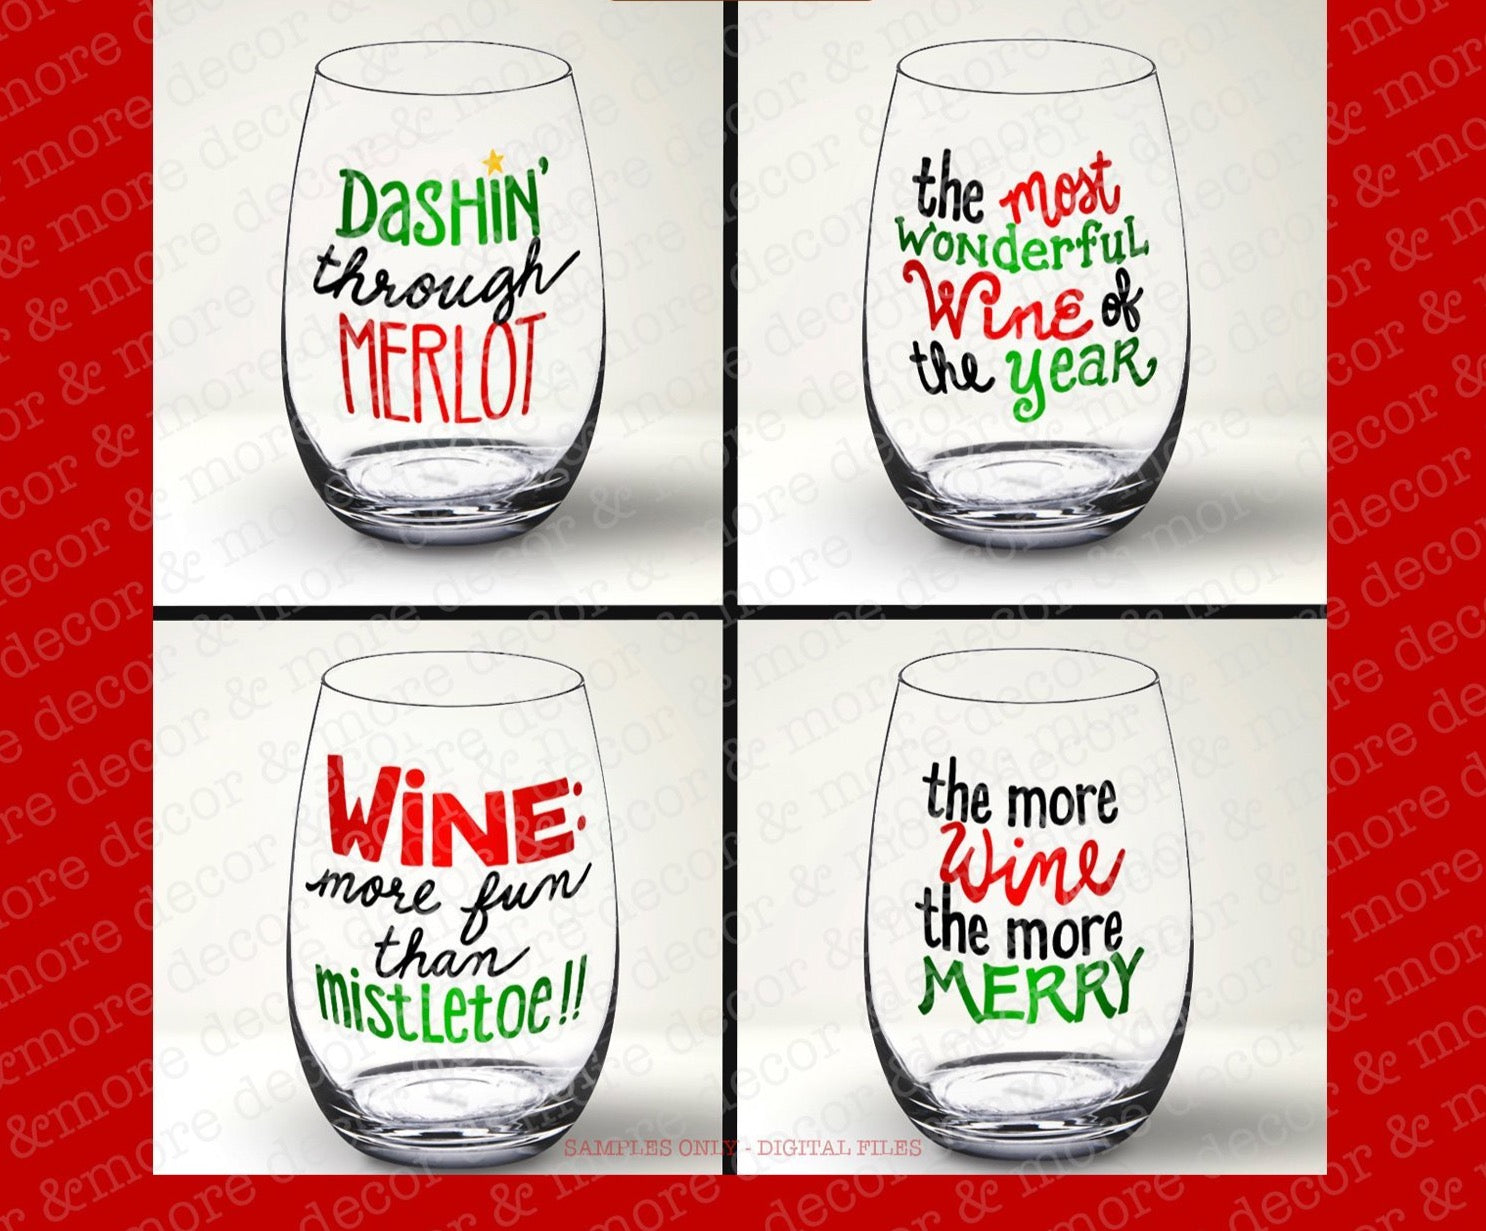 Funny Christmas Wine Glass SVG Bundle, Christmas Wine Glass SVG File, Christmas SVG Files for Cricut